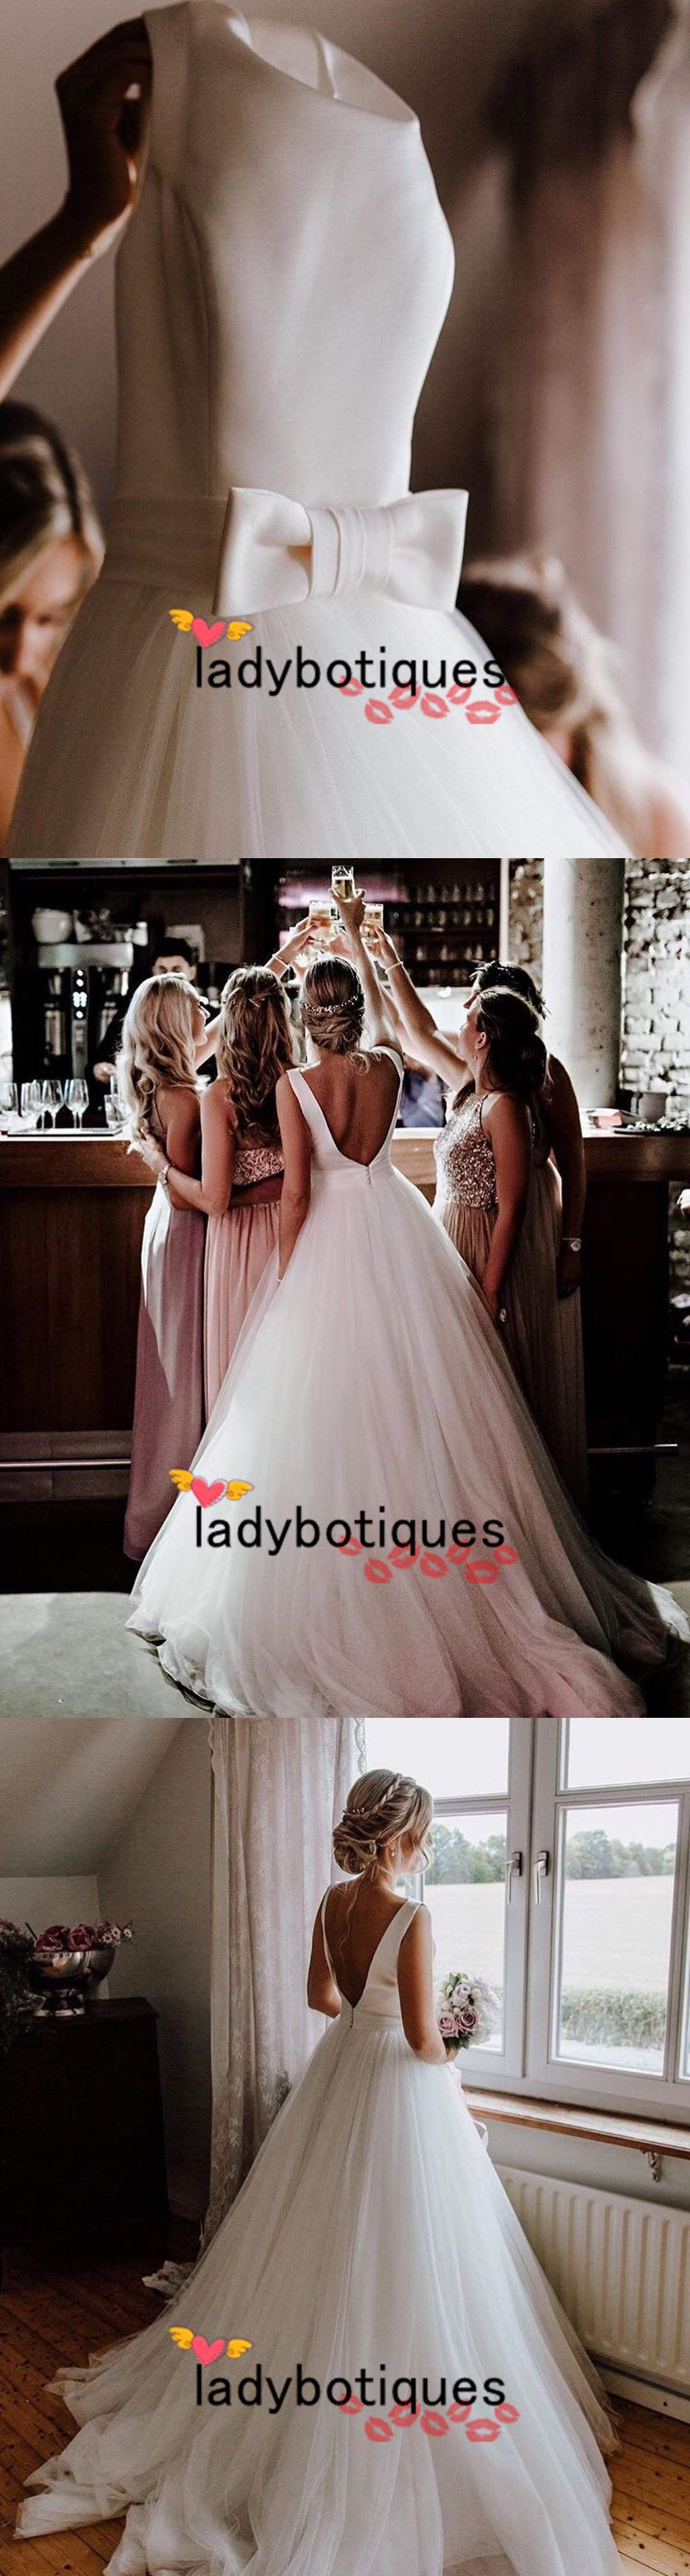 Eelgant white long bridal gown from ladyboutiques weddings